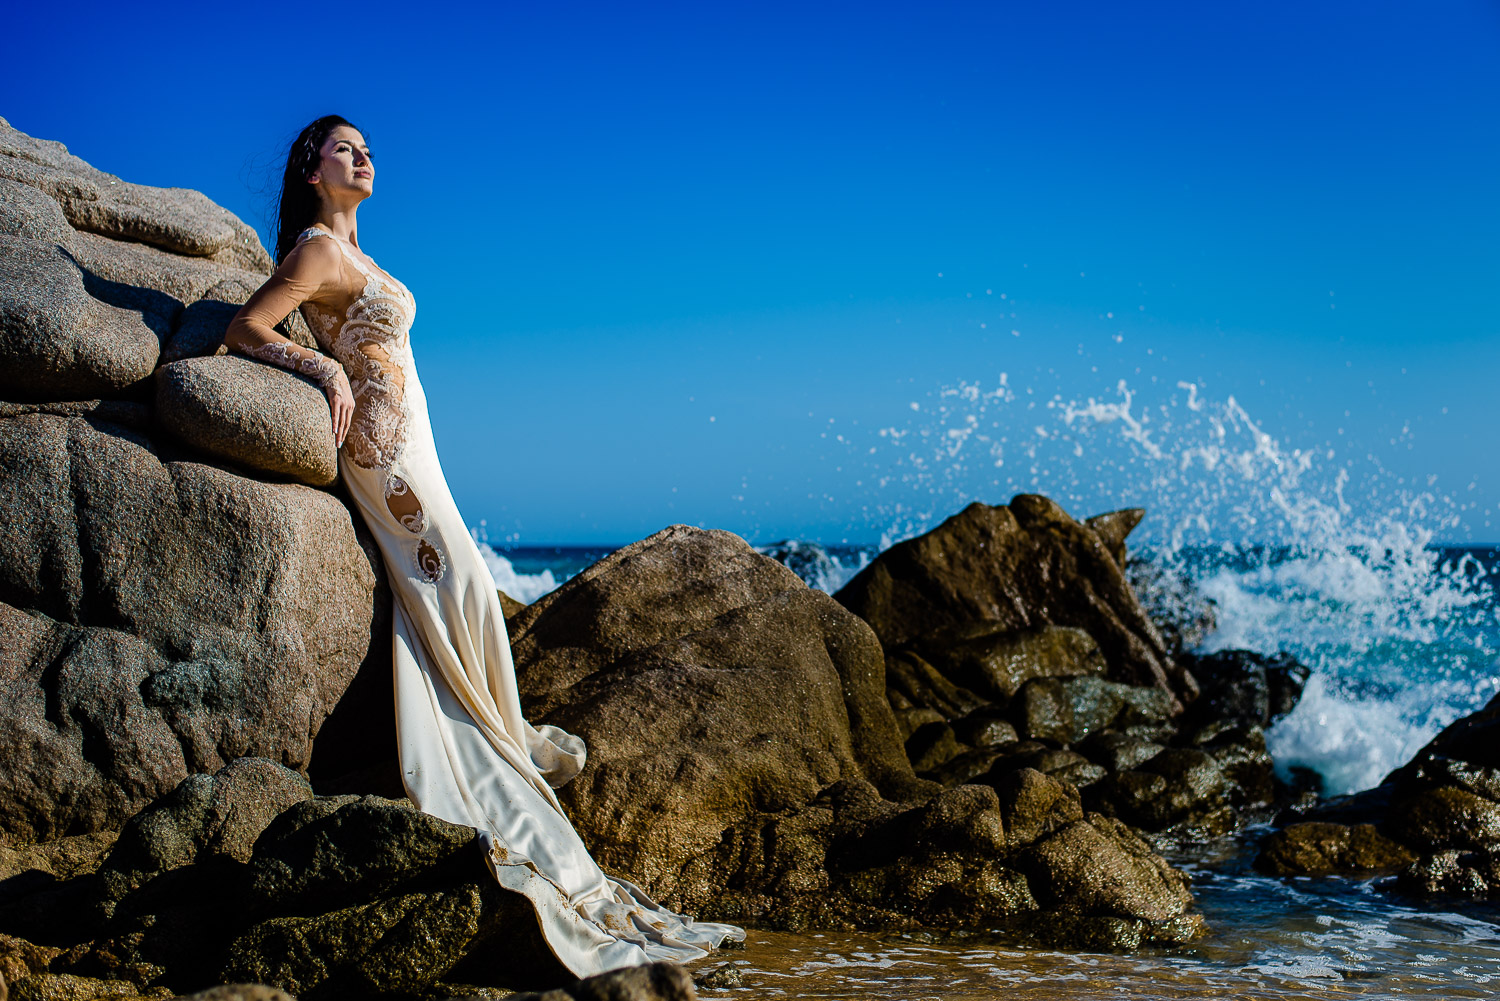 Lovely bride is posing beautifully for the camera   Lovely bride is standing on on the rocks and infront of the beautiful blue beach. The bride is looking gorgeous posing for the camera under the bright sun and the rough water - destination wedding of the wonderful couple Hagop and Rose at the picturesque Sheraton Los Cabos on the beach. GVphotographer is an amazing destination wedding photographer based in Cabo San Lucas, Mexico